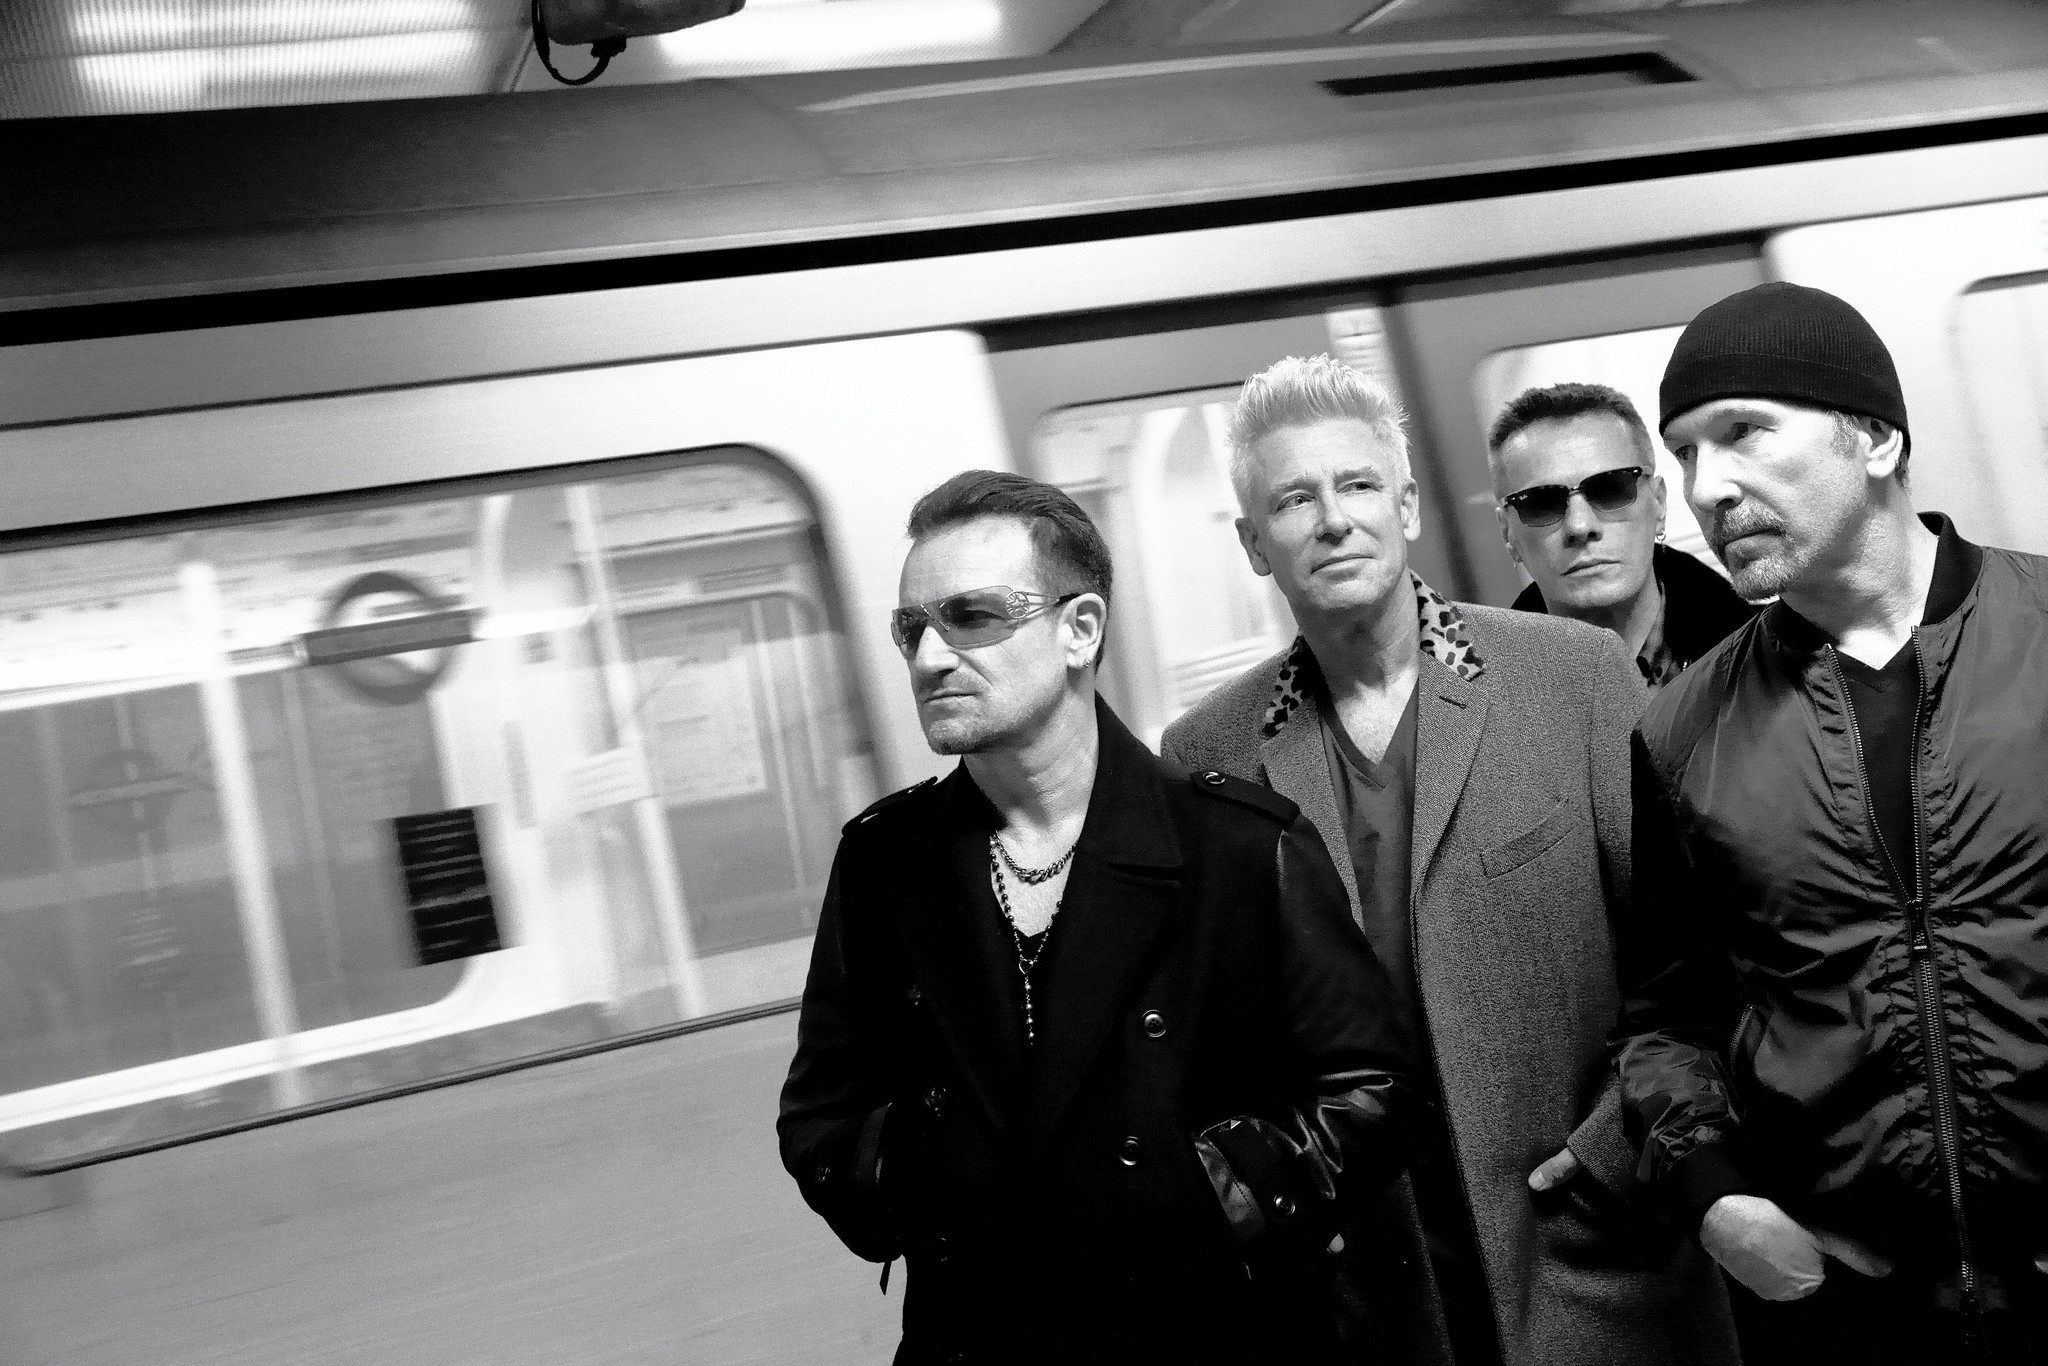 U2 aims for intimacy, presence in latest tour